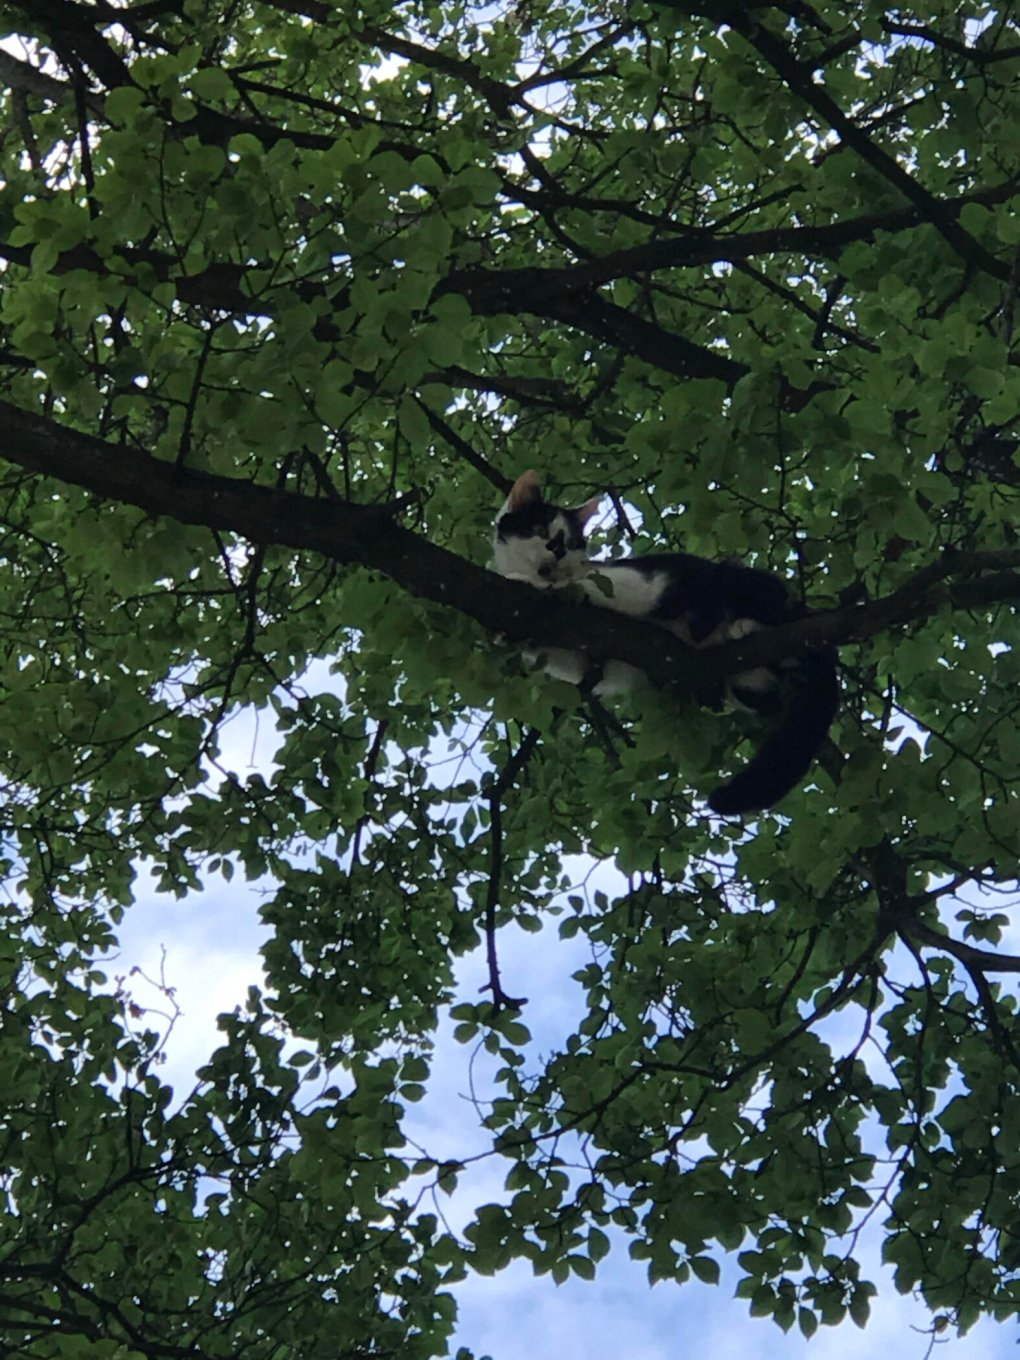 RSPCA and Fire Services Rescue a Young cat Stuck 25ft up a Tree in Sussex